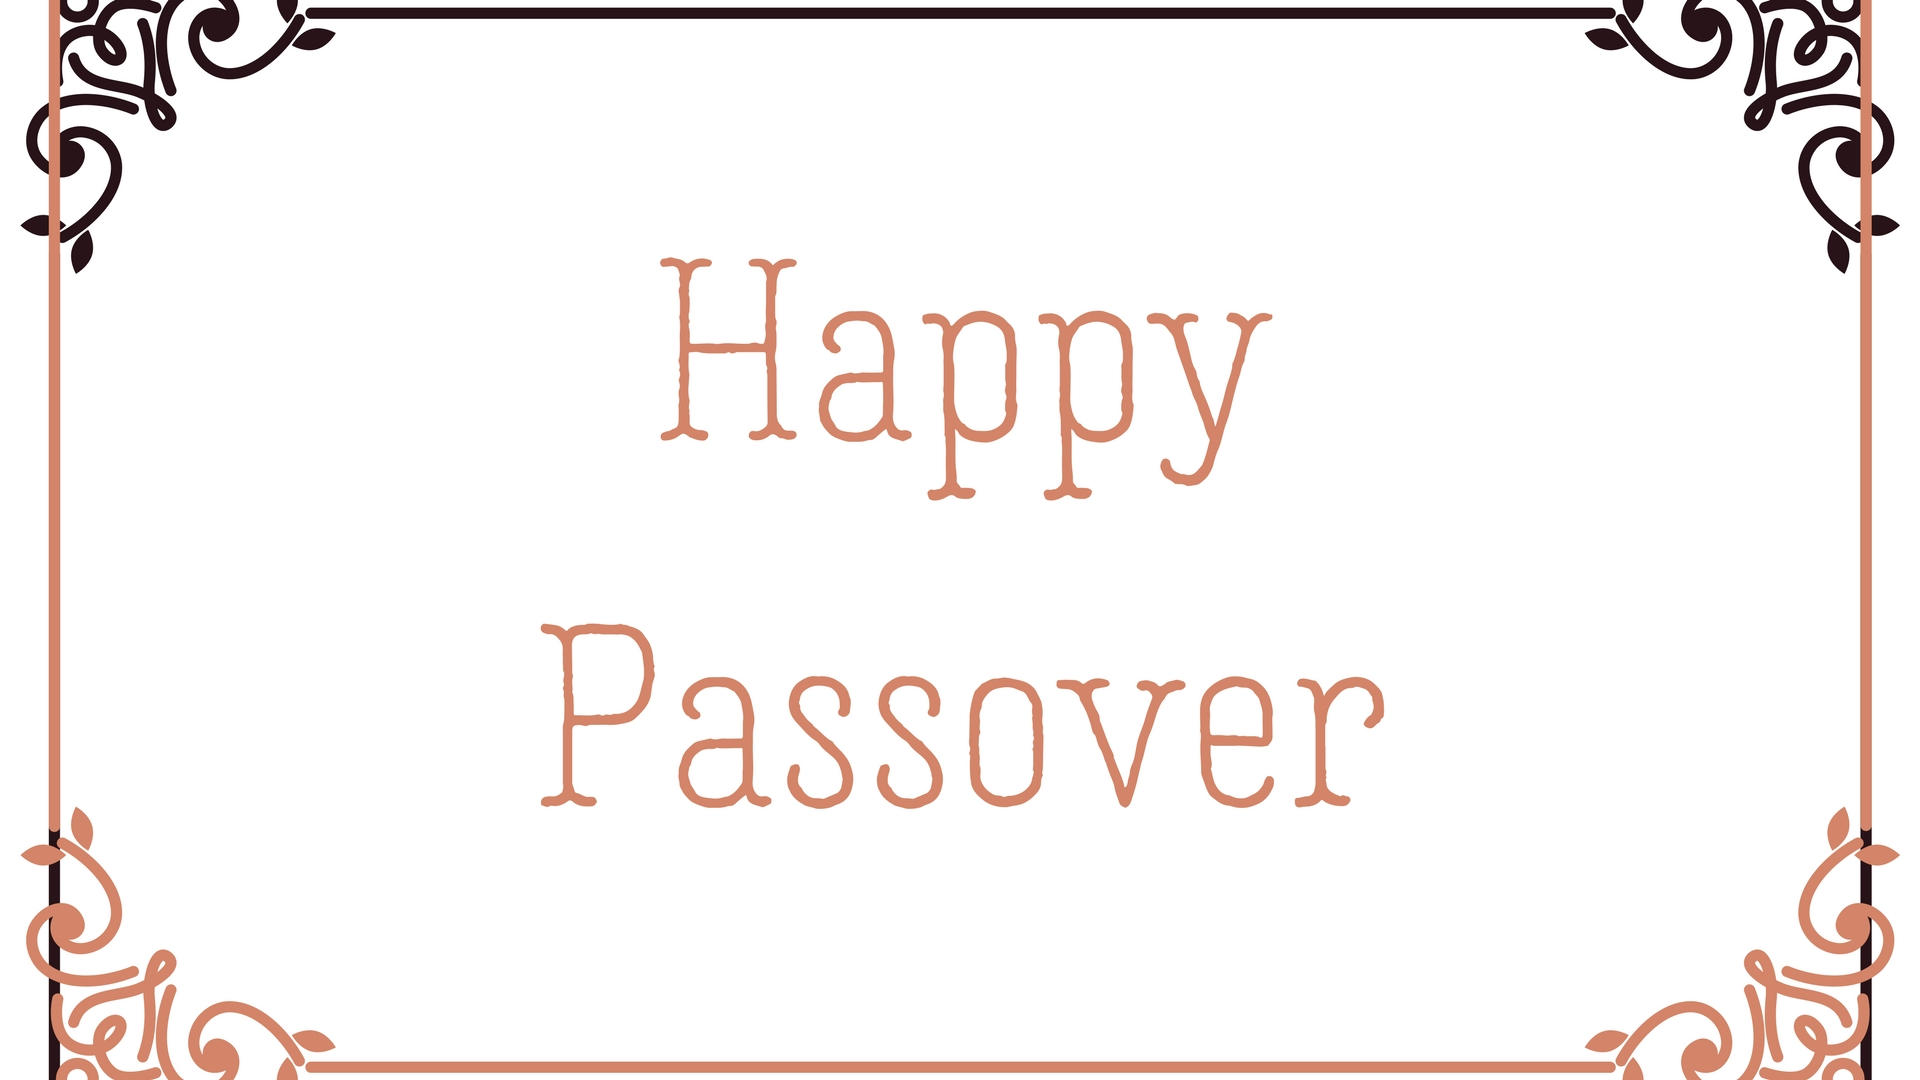 Happy Passover Rectangle Frame Greeting Card Postcard 8